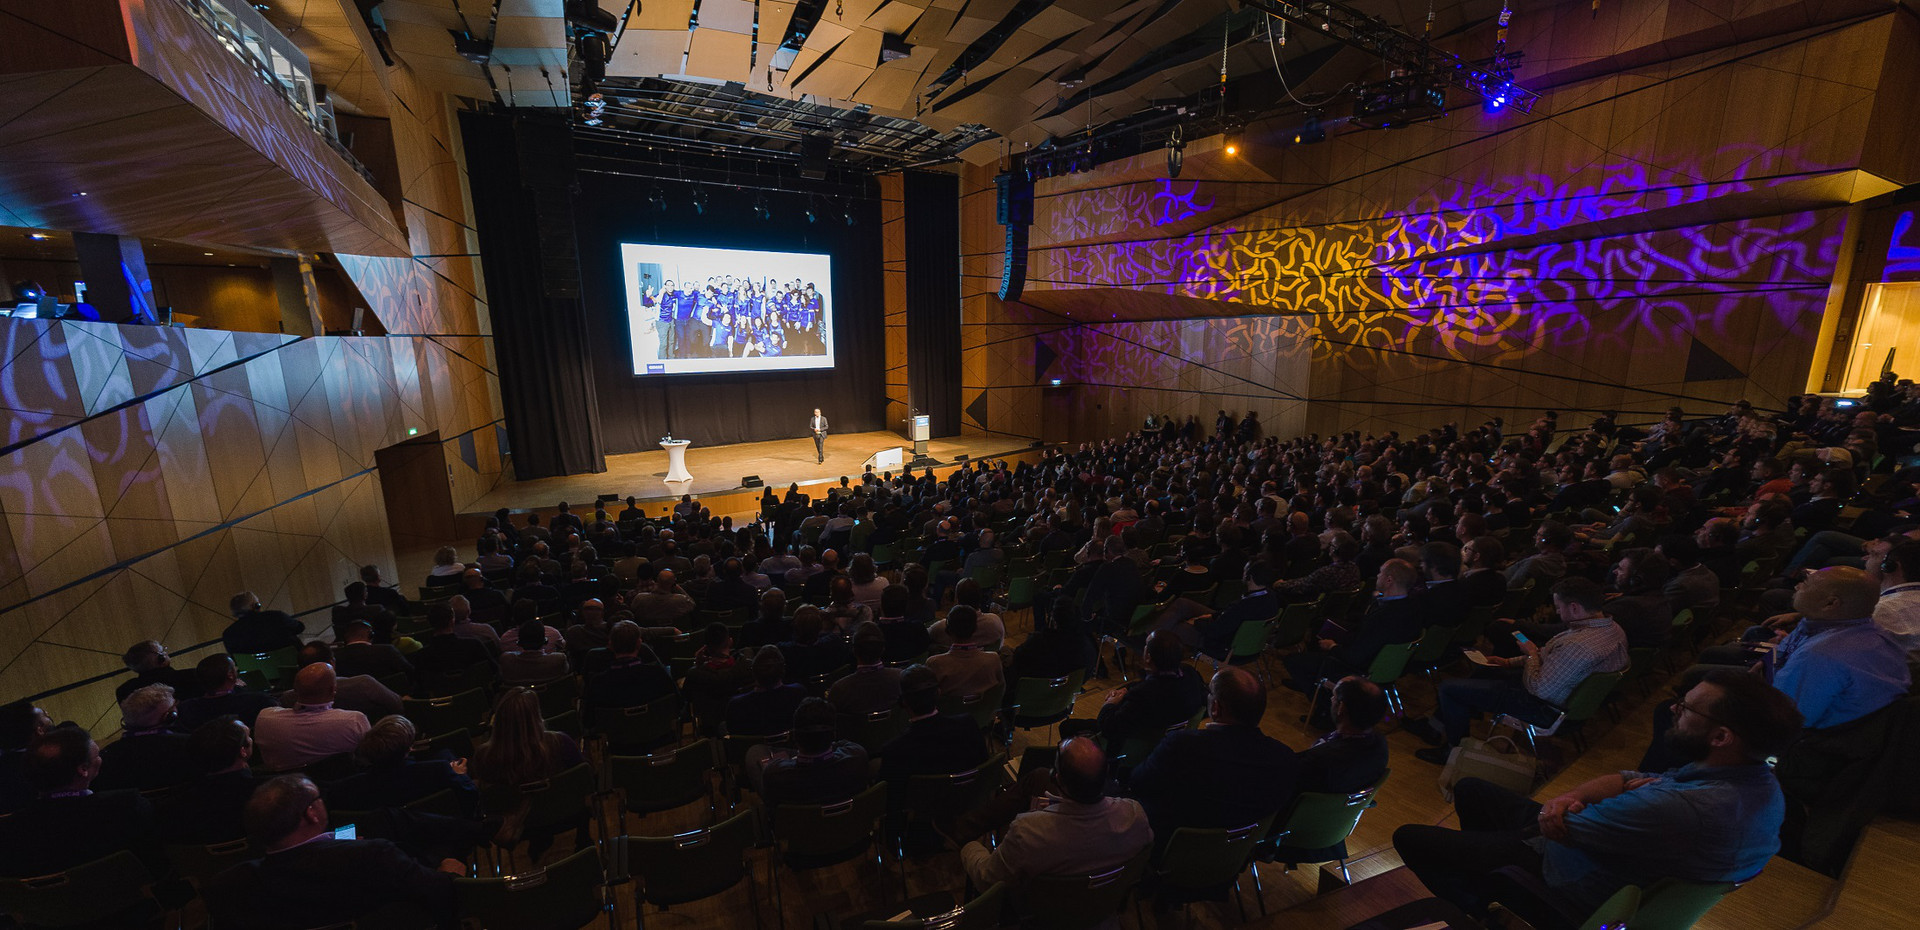 The auditorium in the darmstadtium was full to the very last seat.